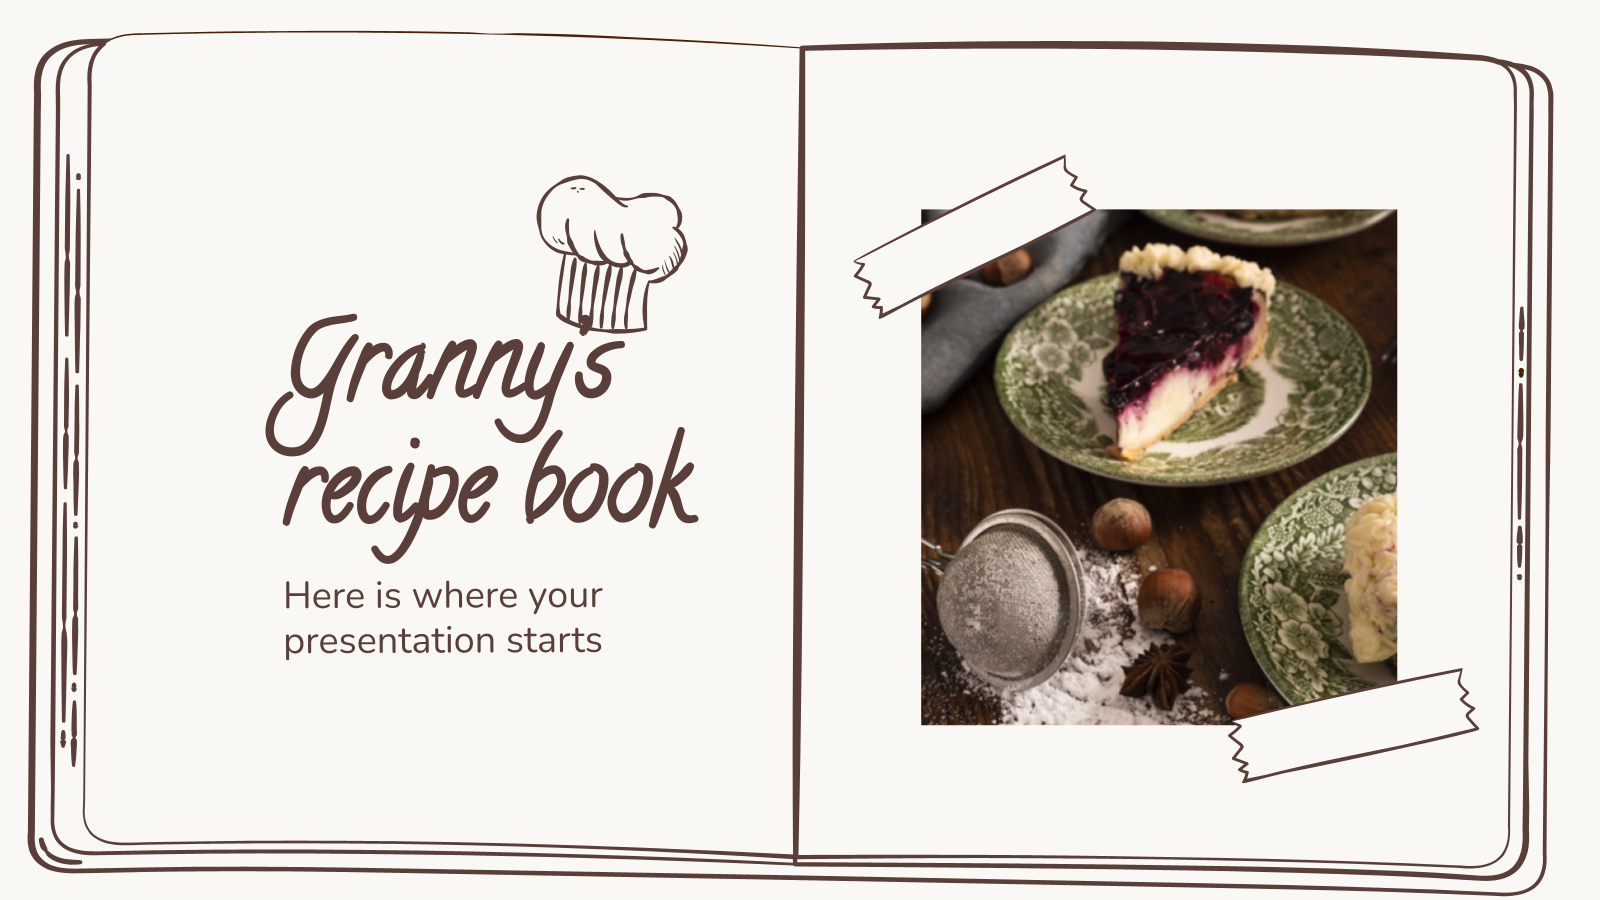 Granny's Recipe Book presentation template